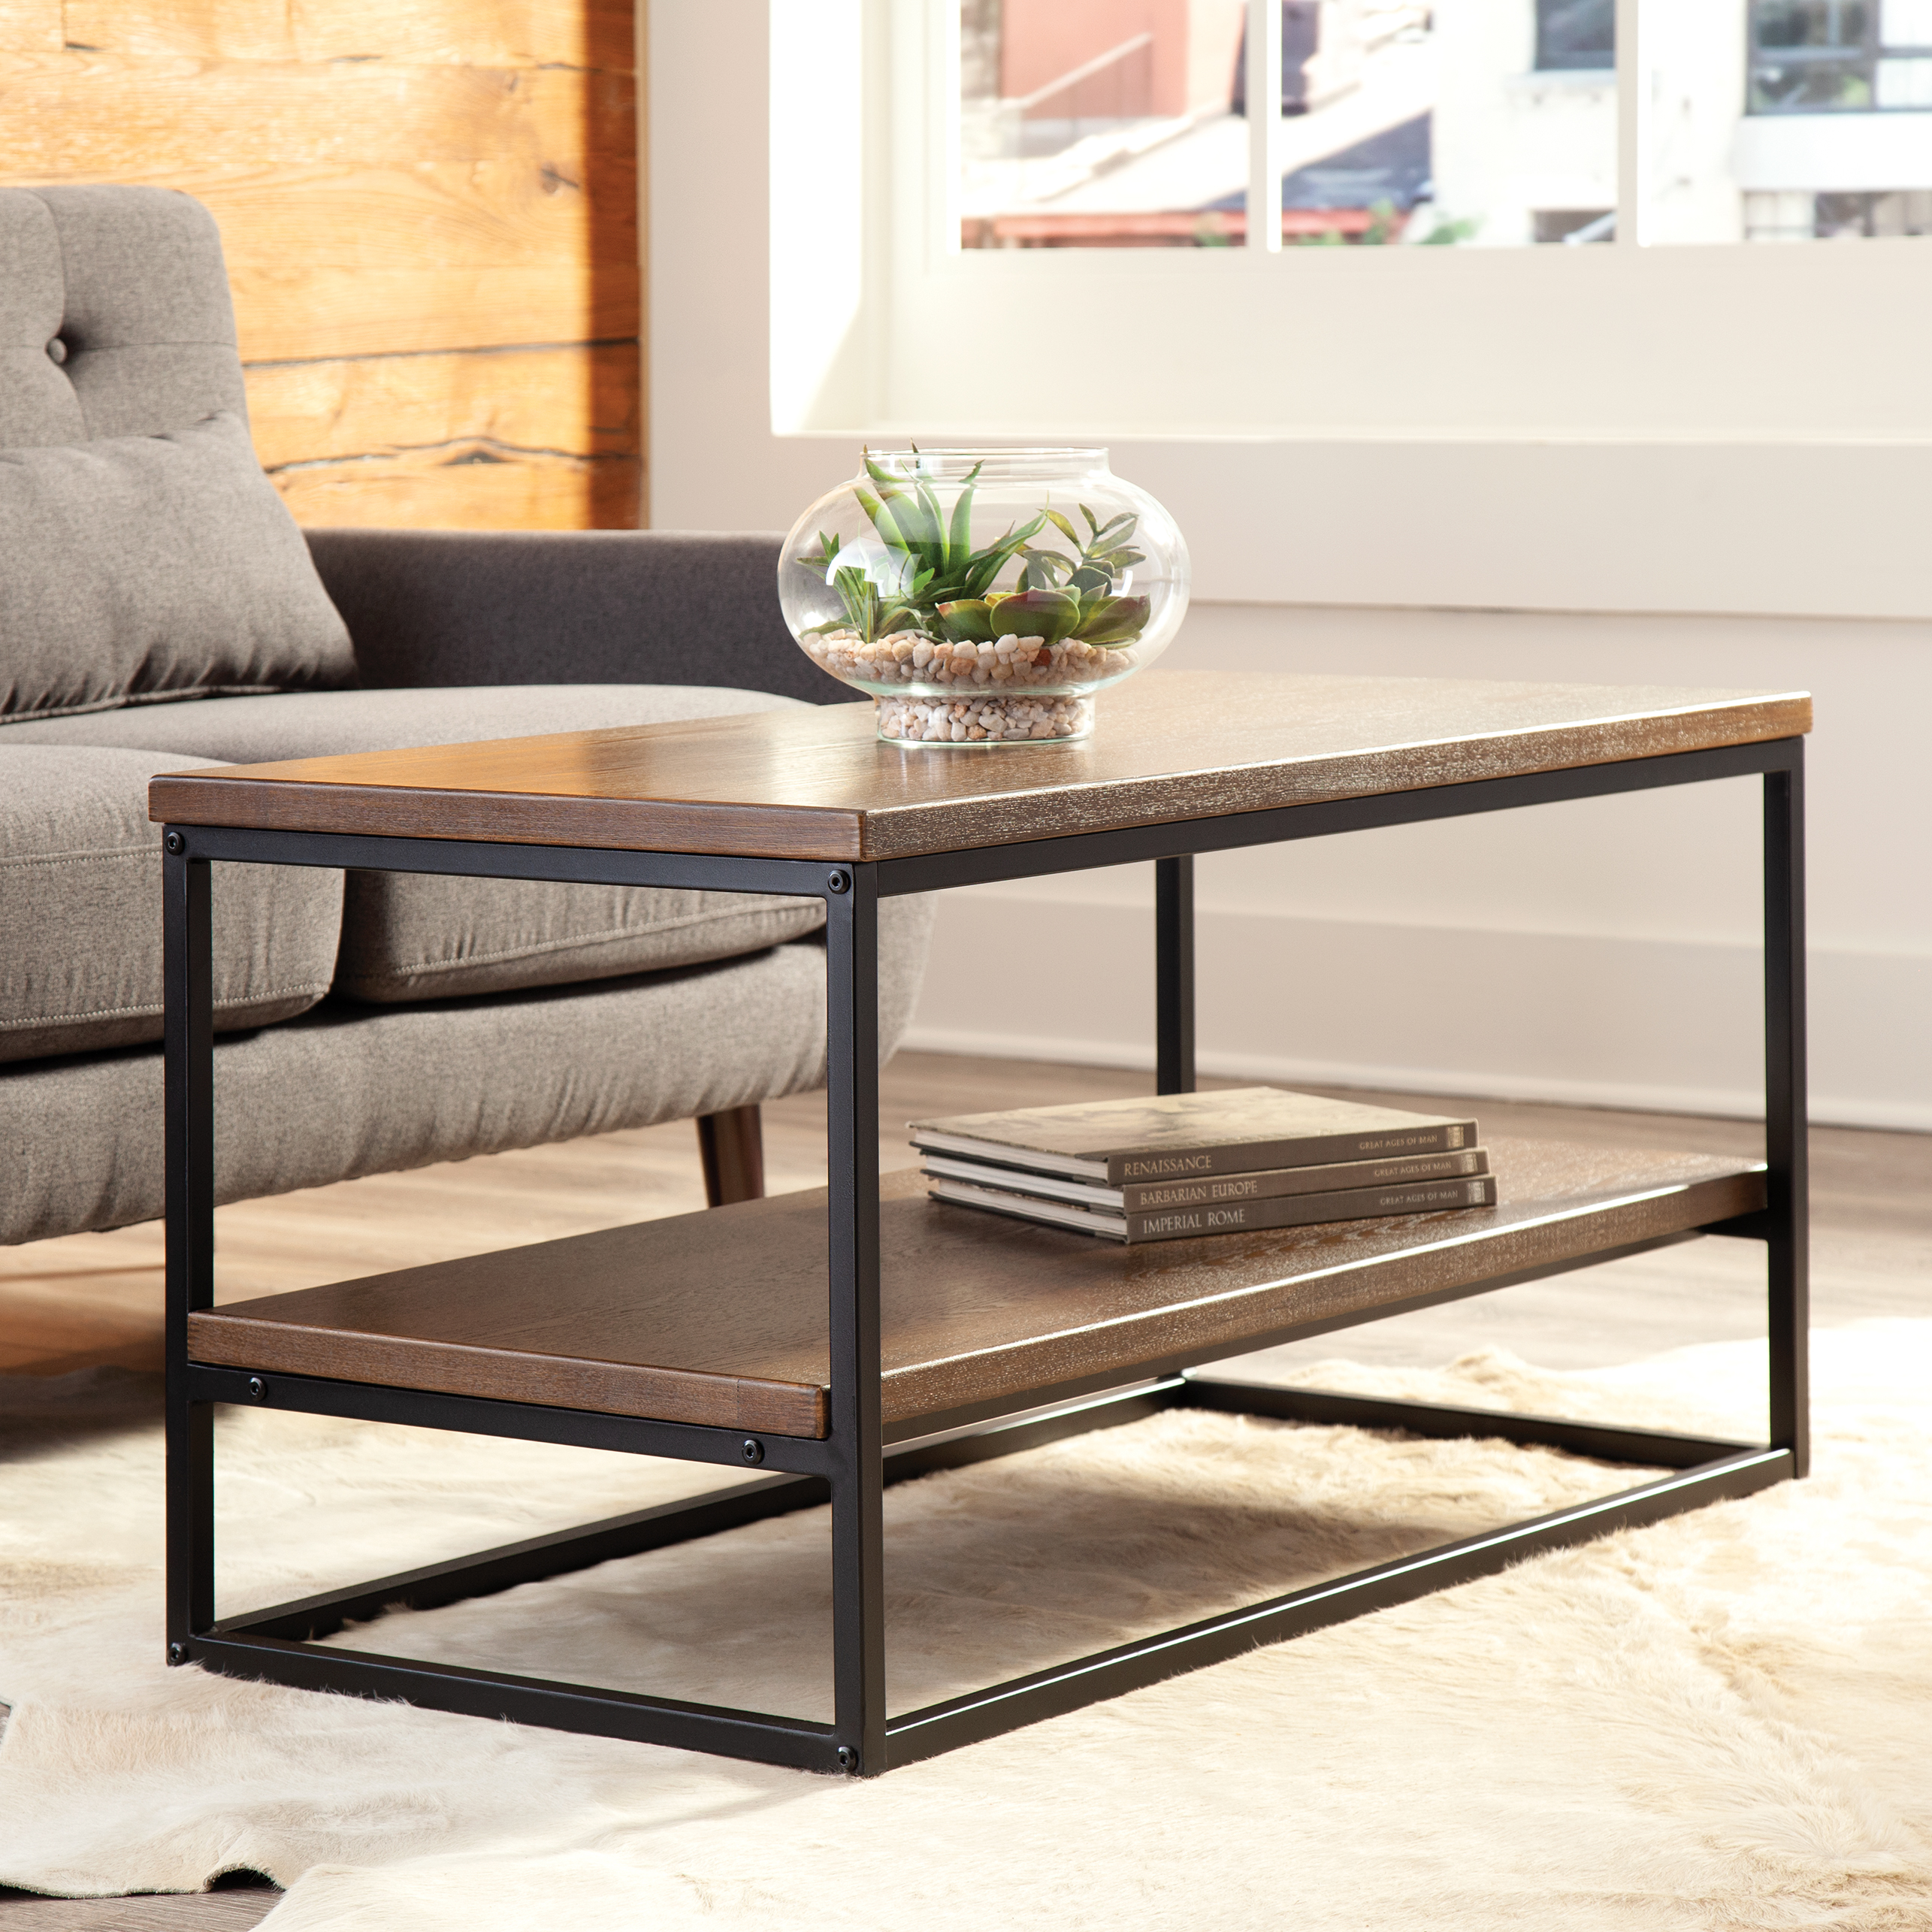 ofm industrial modern wood top metal frame coffee table with wood shelf walmart com